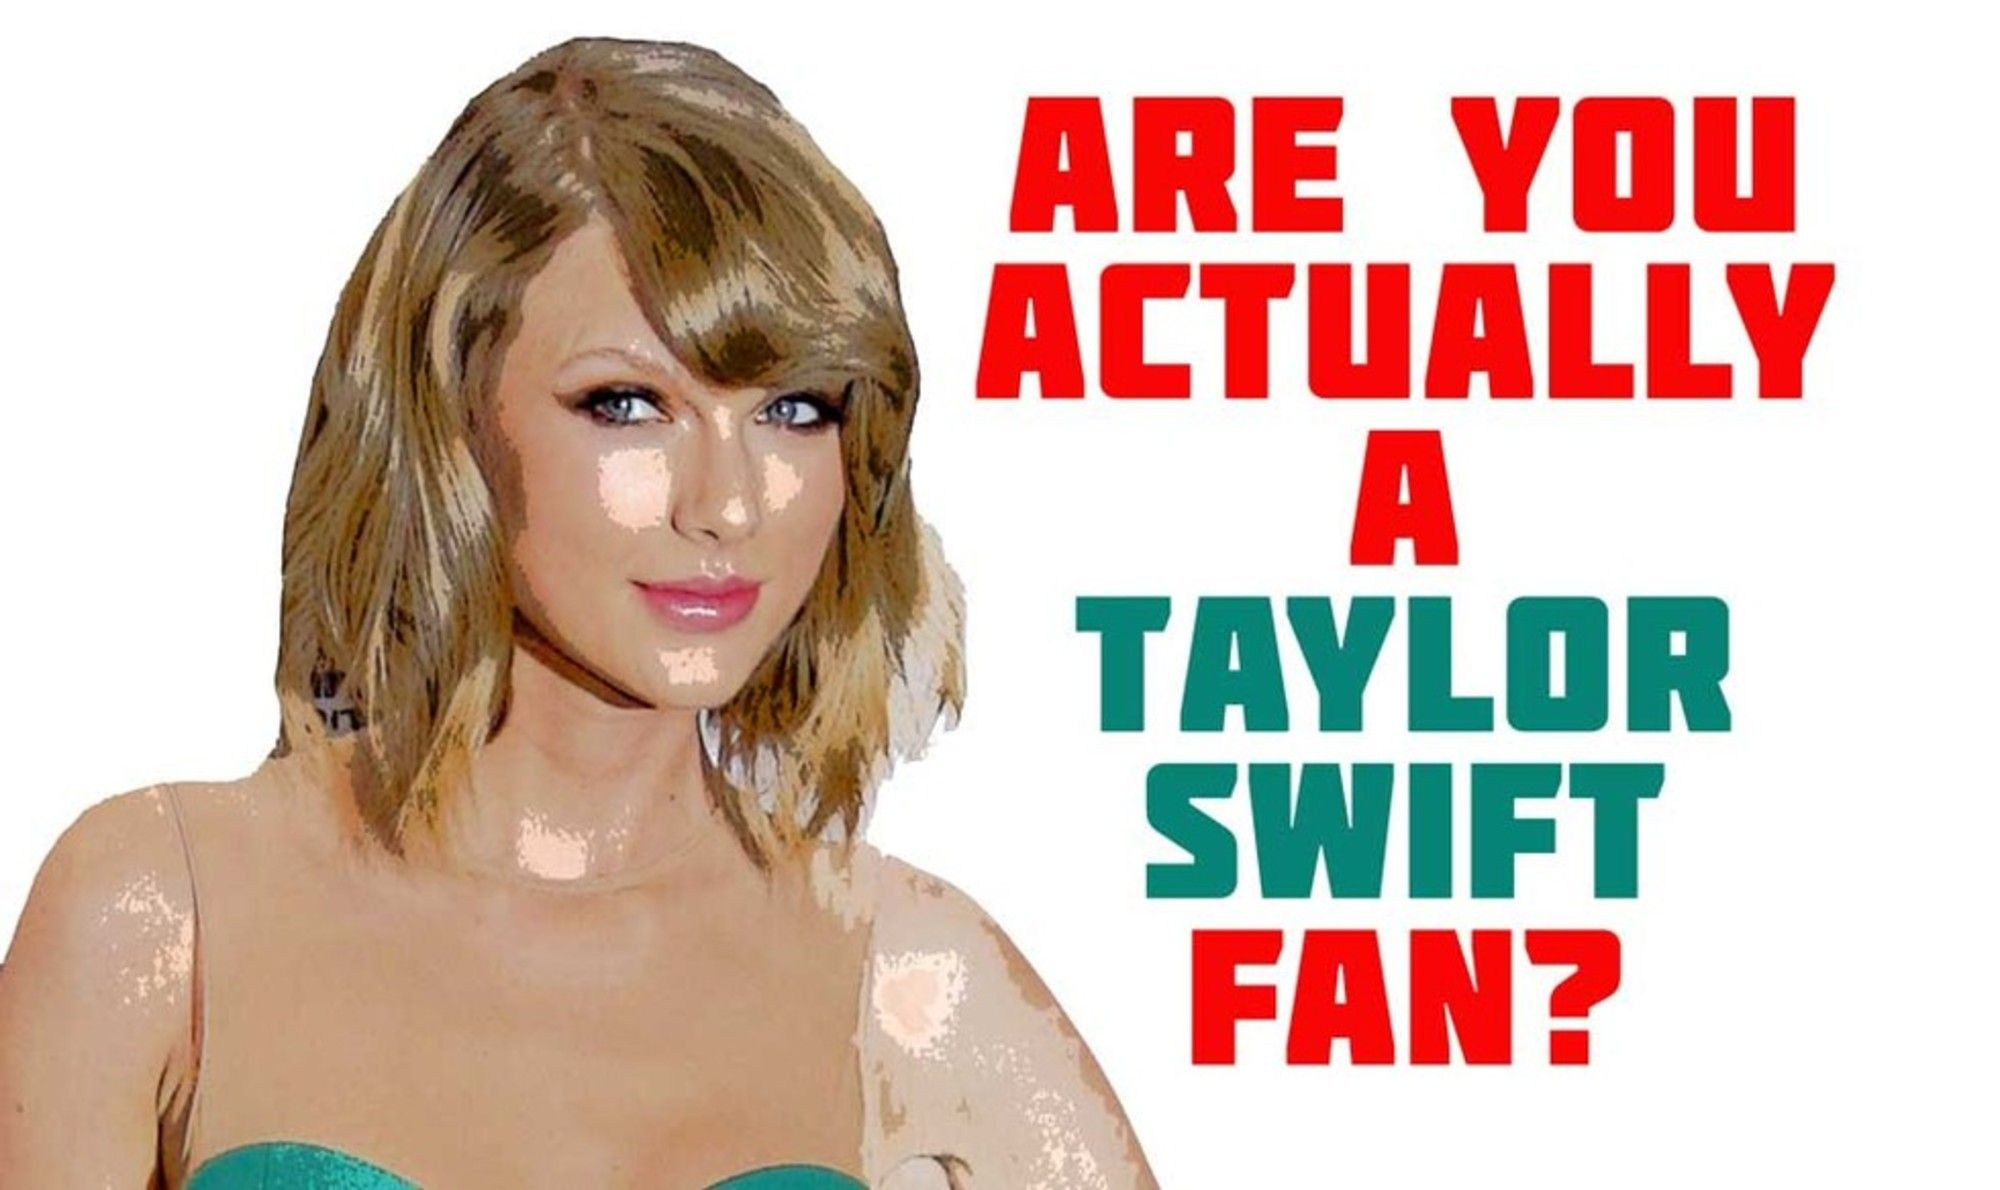 Do you claim to not love Taylor Swift? Are you still